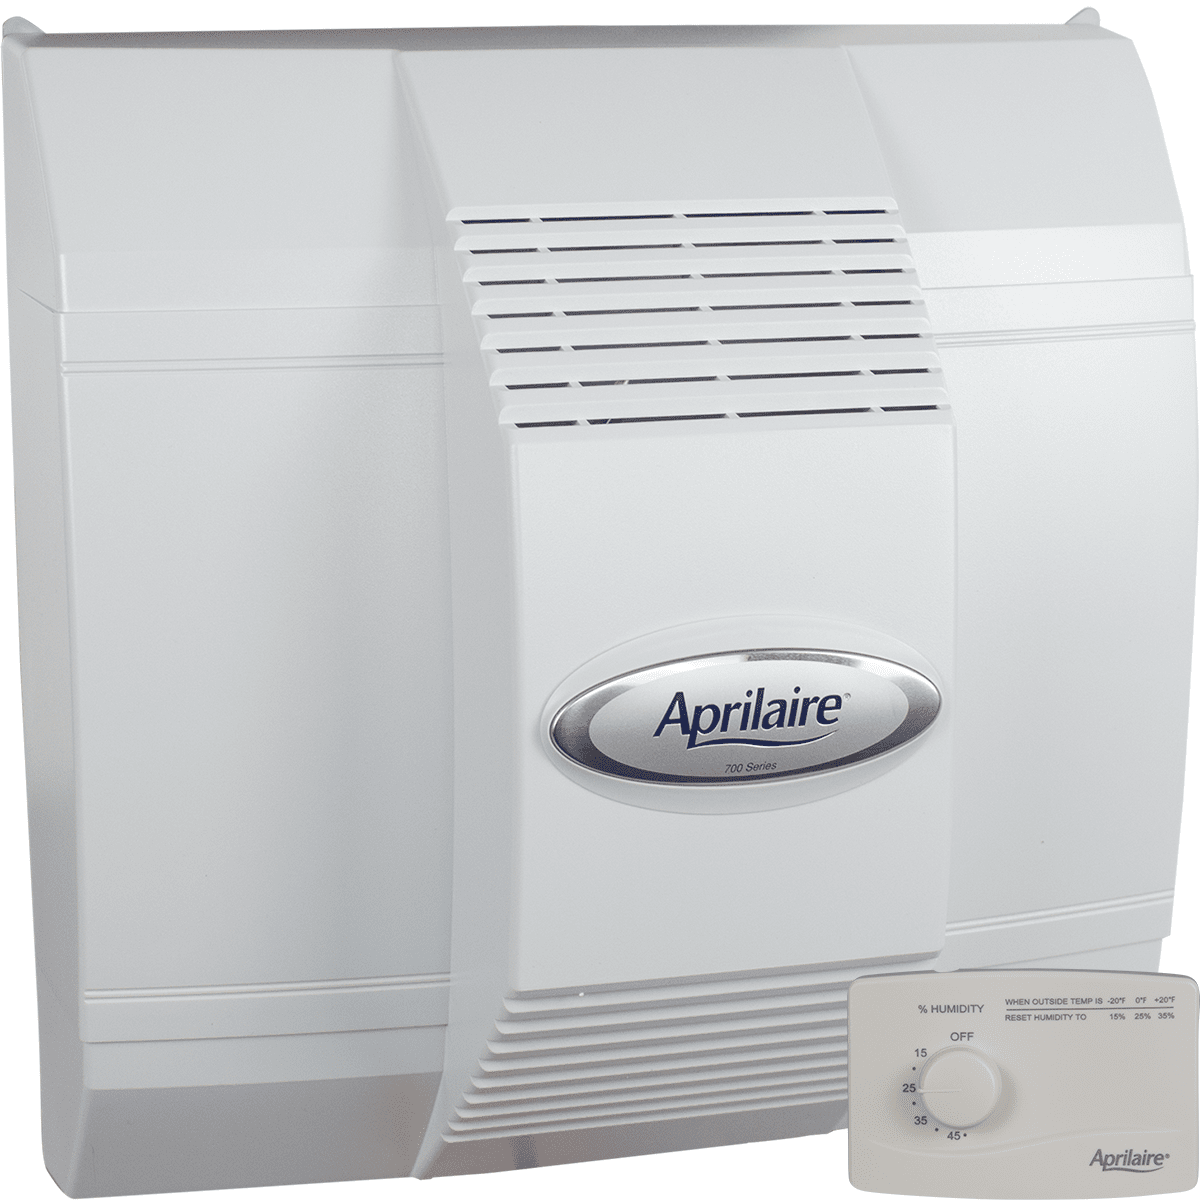 Image of Aprilaire Model 700 High-capacity Humidifier - Manual Control